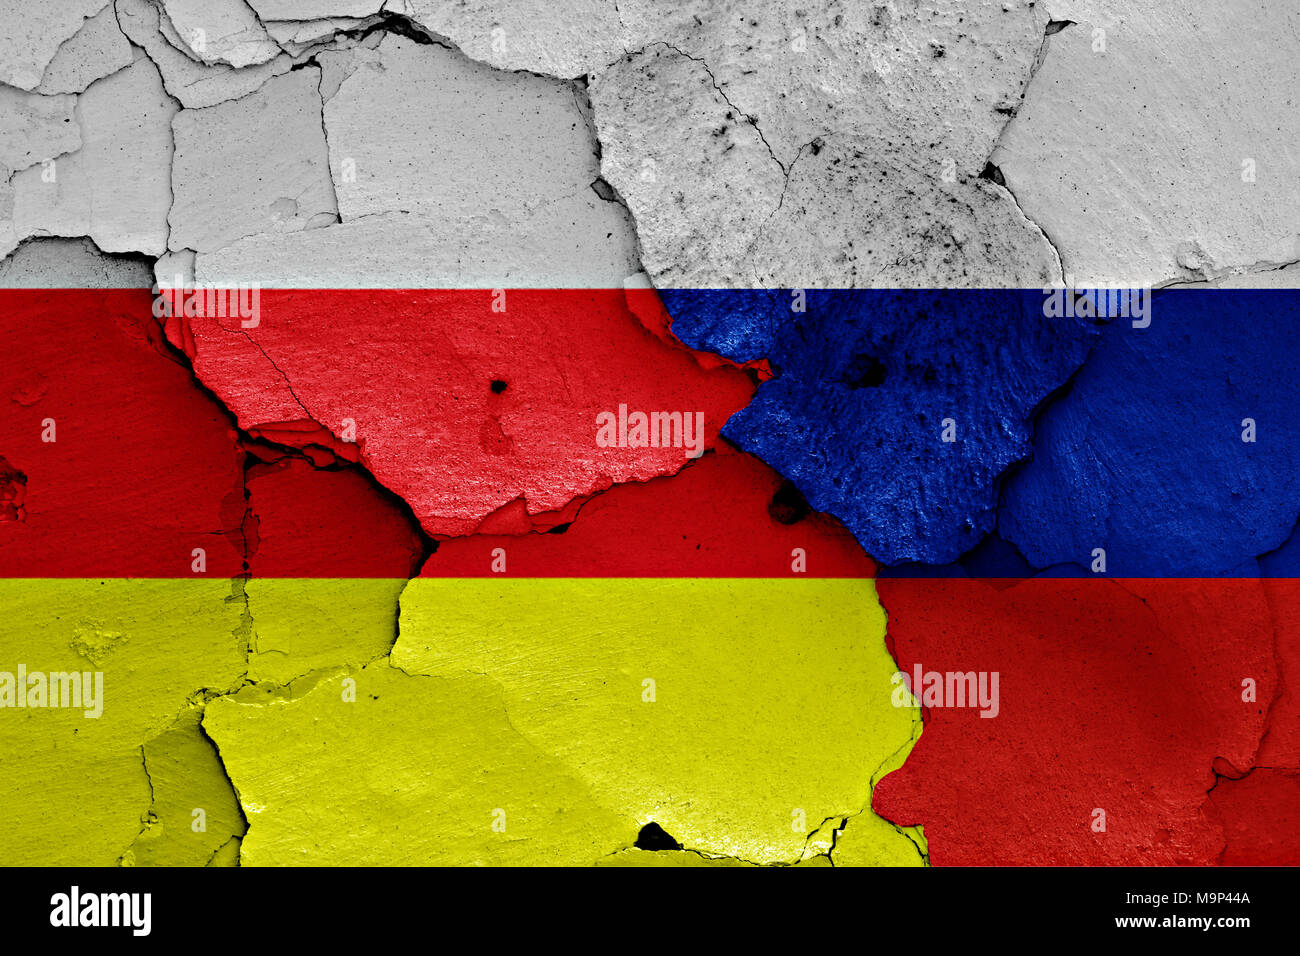 flags of North Ossetia and Russia painted on cracked wall - Stock Image